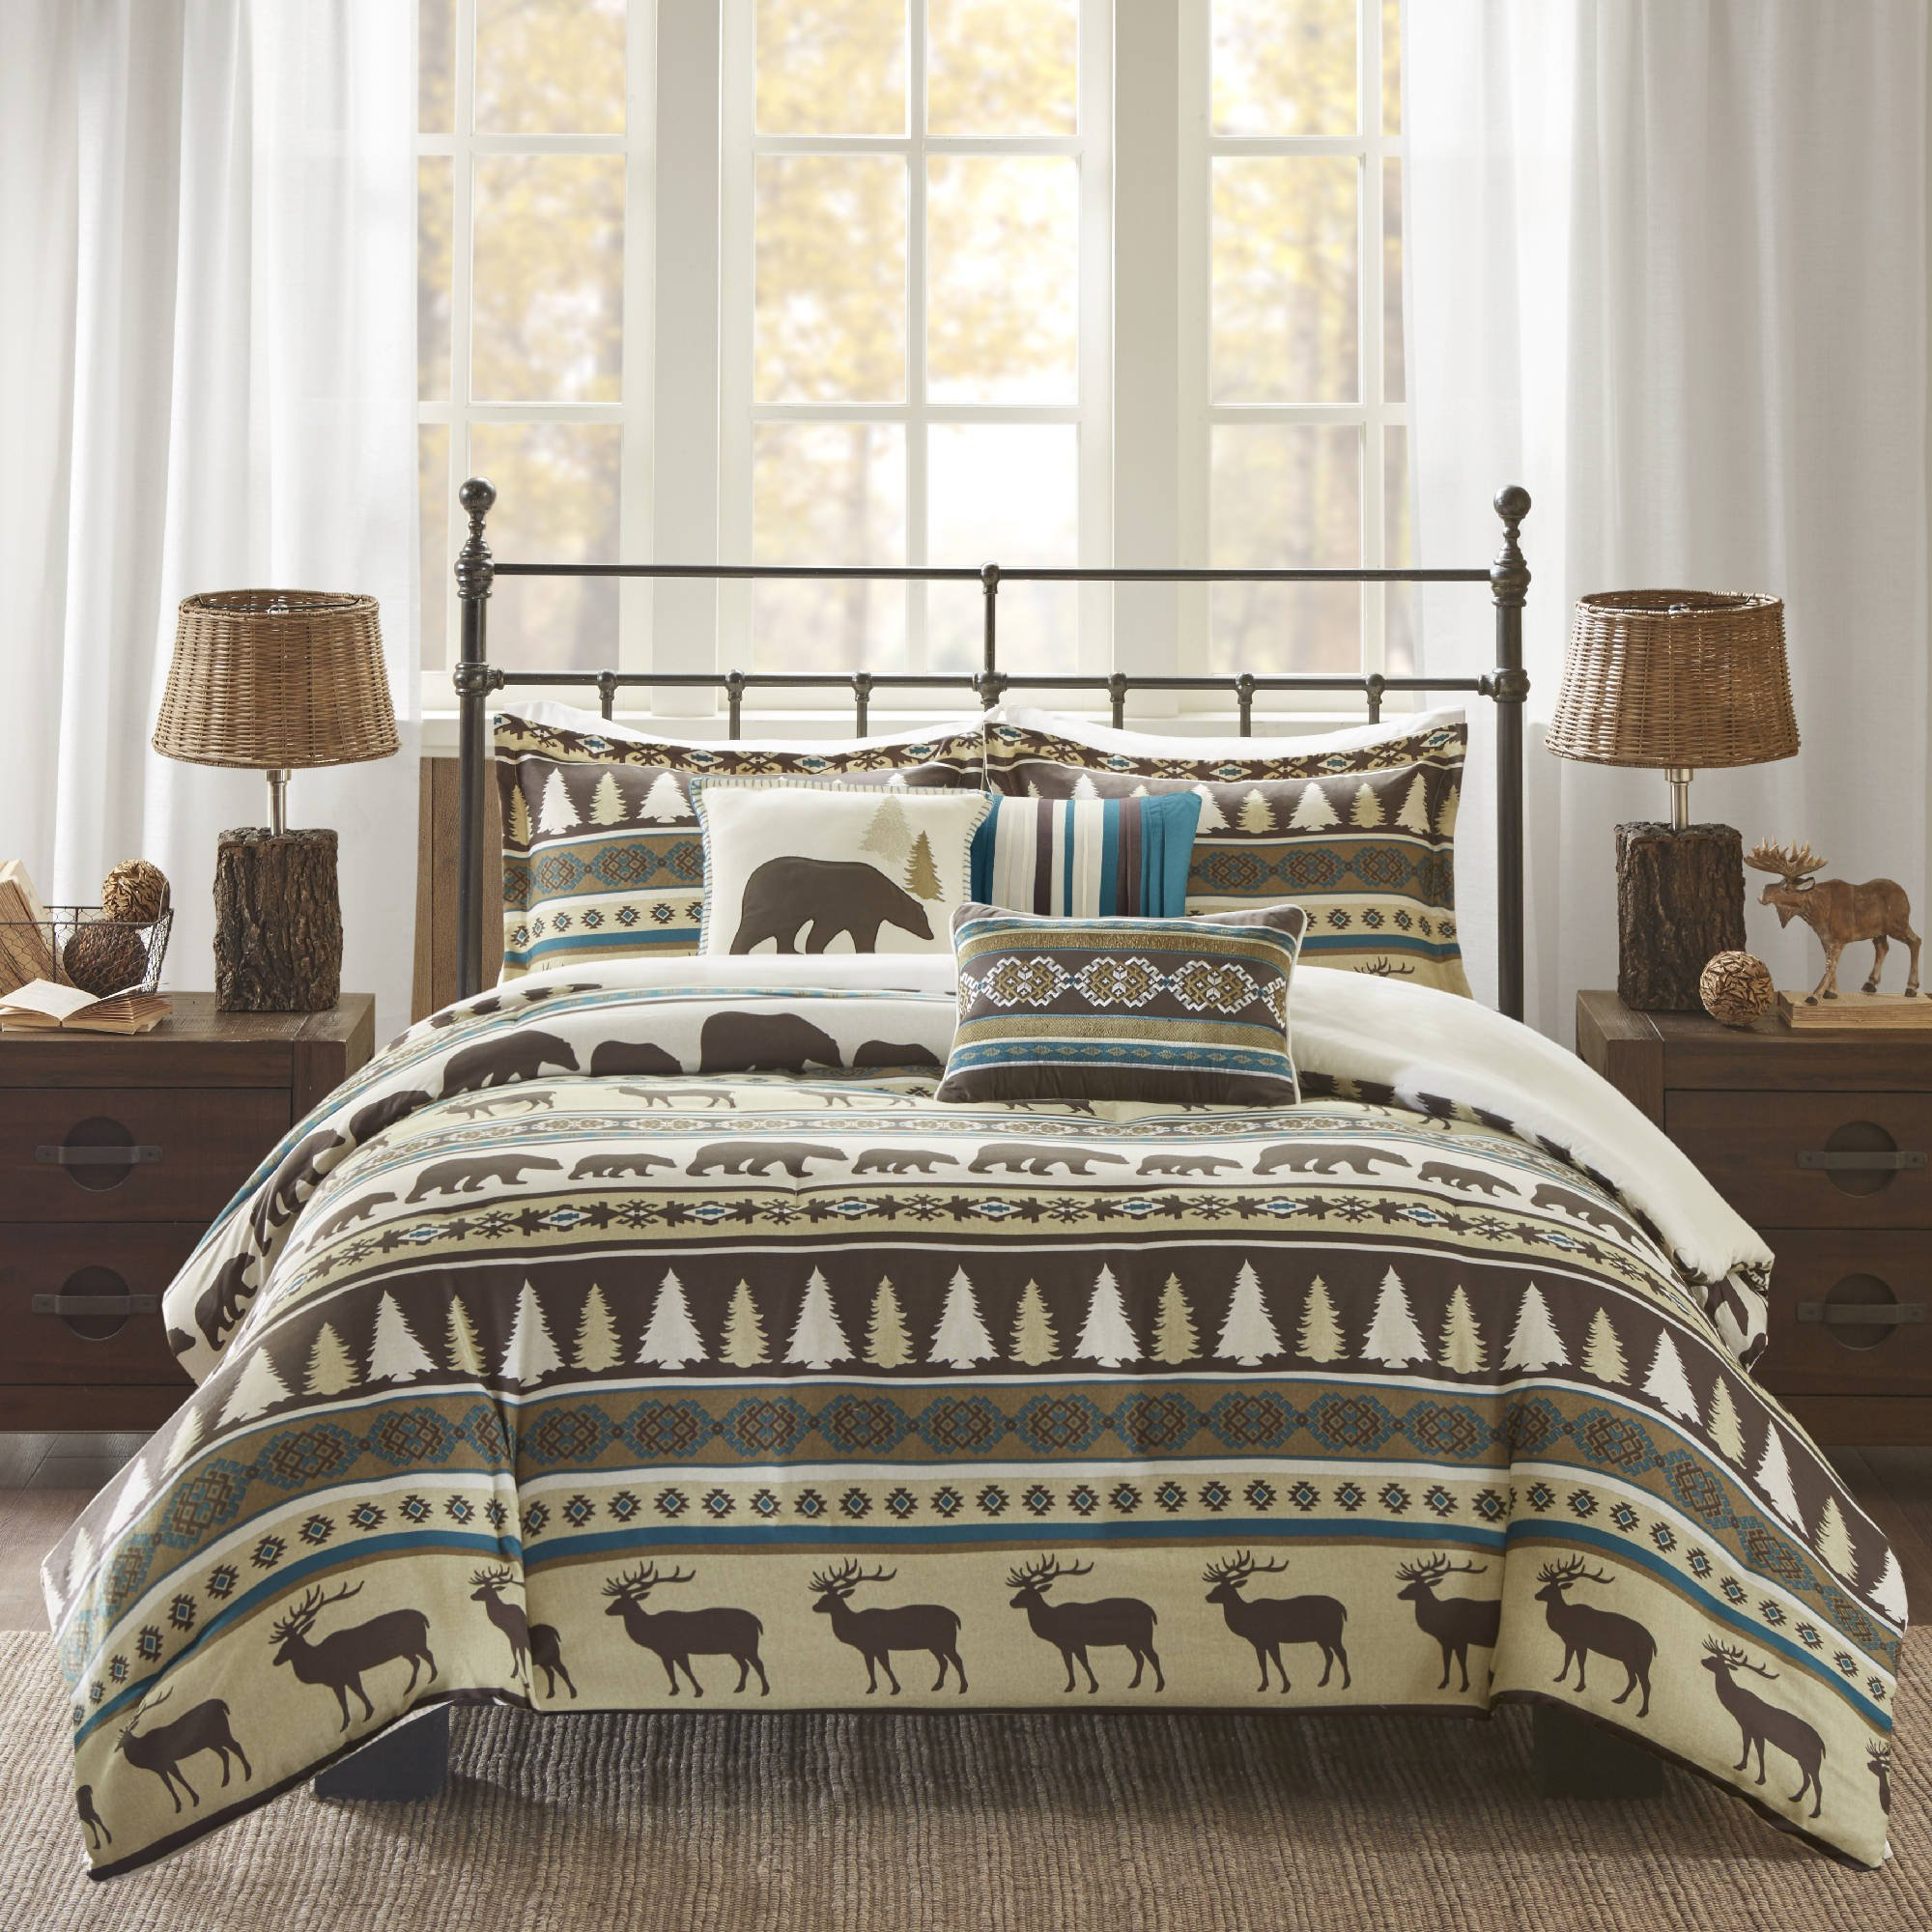 6 Piece Teal Brown Stripe King/Cal King Duvet Cover Set, Lodge Animal Print Themed Bedding, Cabin Country Tartan Pattern Cottage Woods Bears Deer Pine Trees Horizontal Diamond Patterns,Polyester